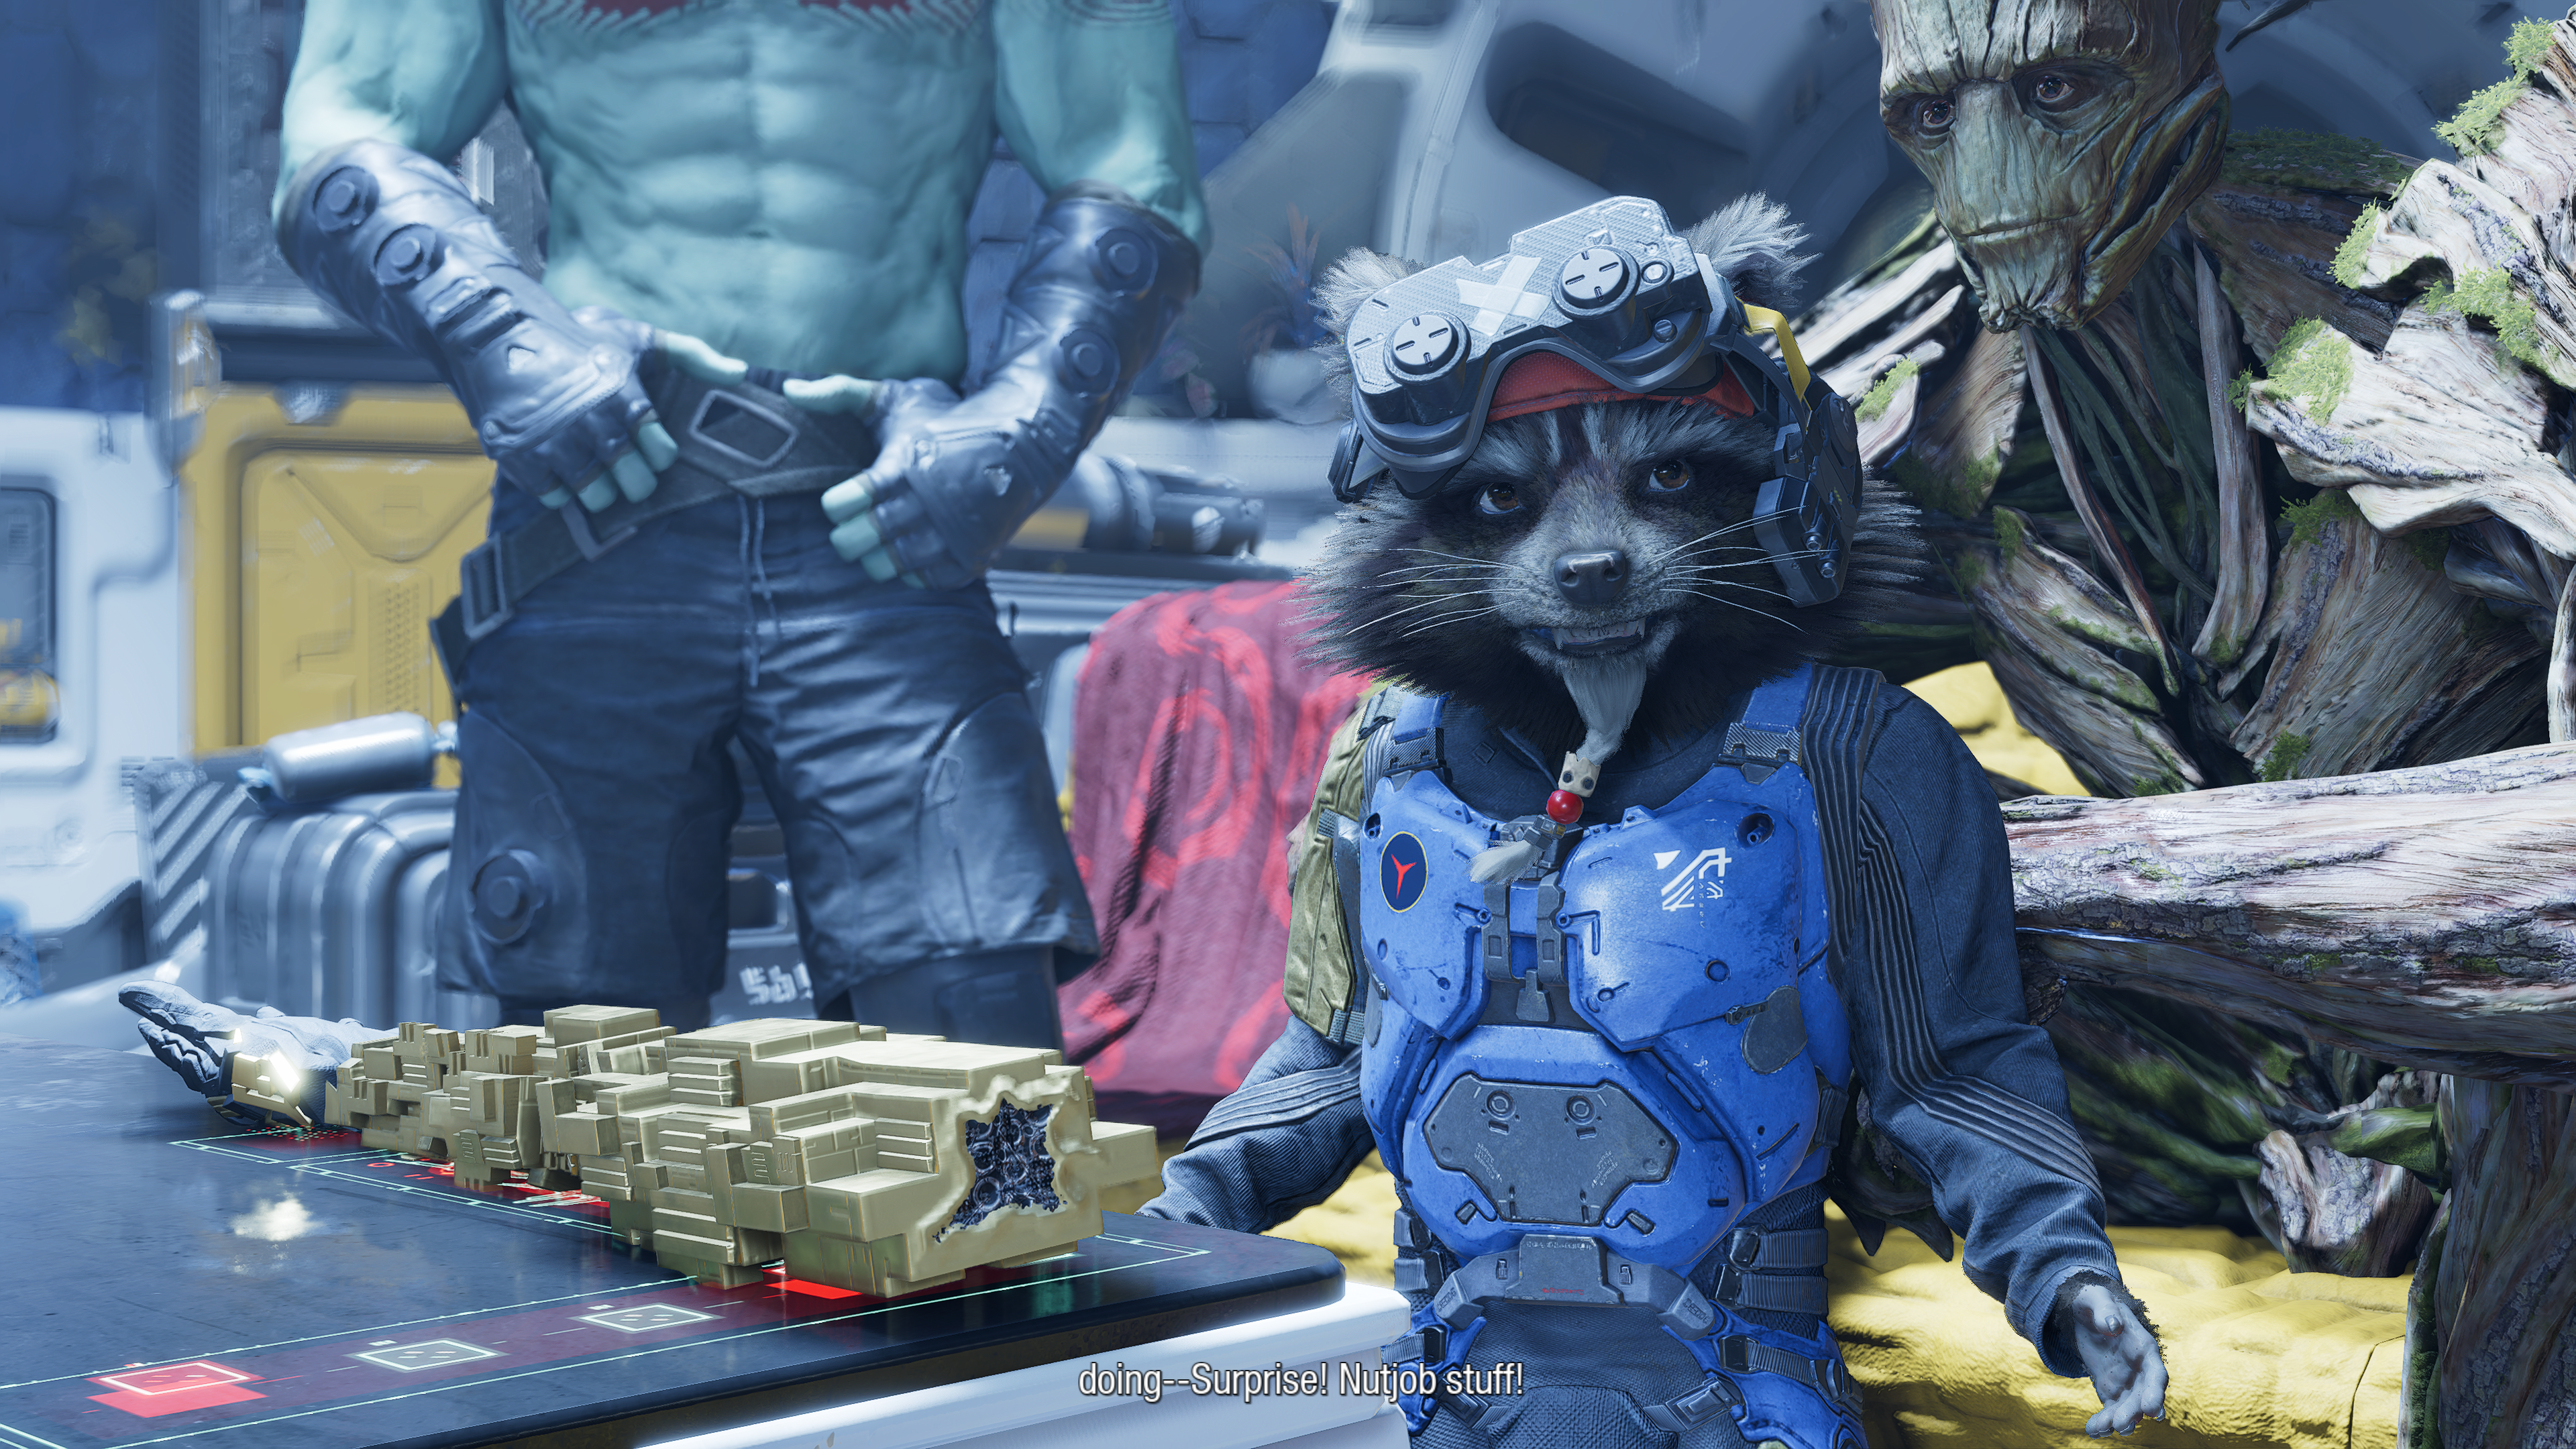 cnet.com - Oscar Gonzalez - Guardians of the Galaxy review: A video game worthy of the MCU